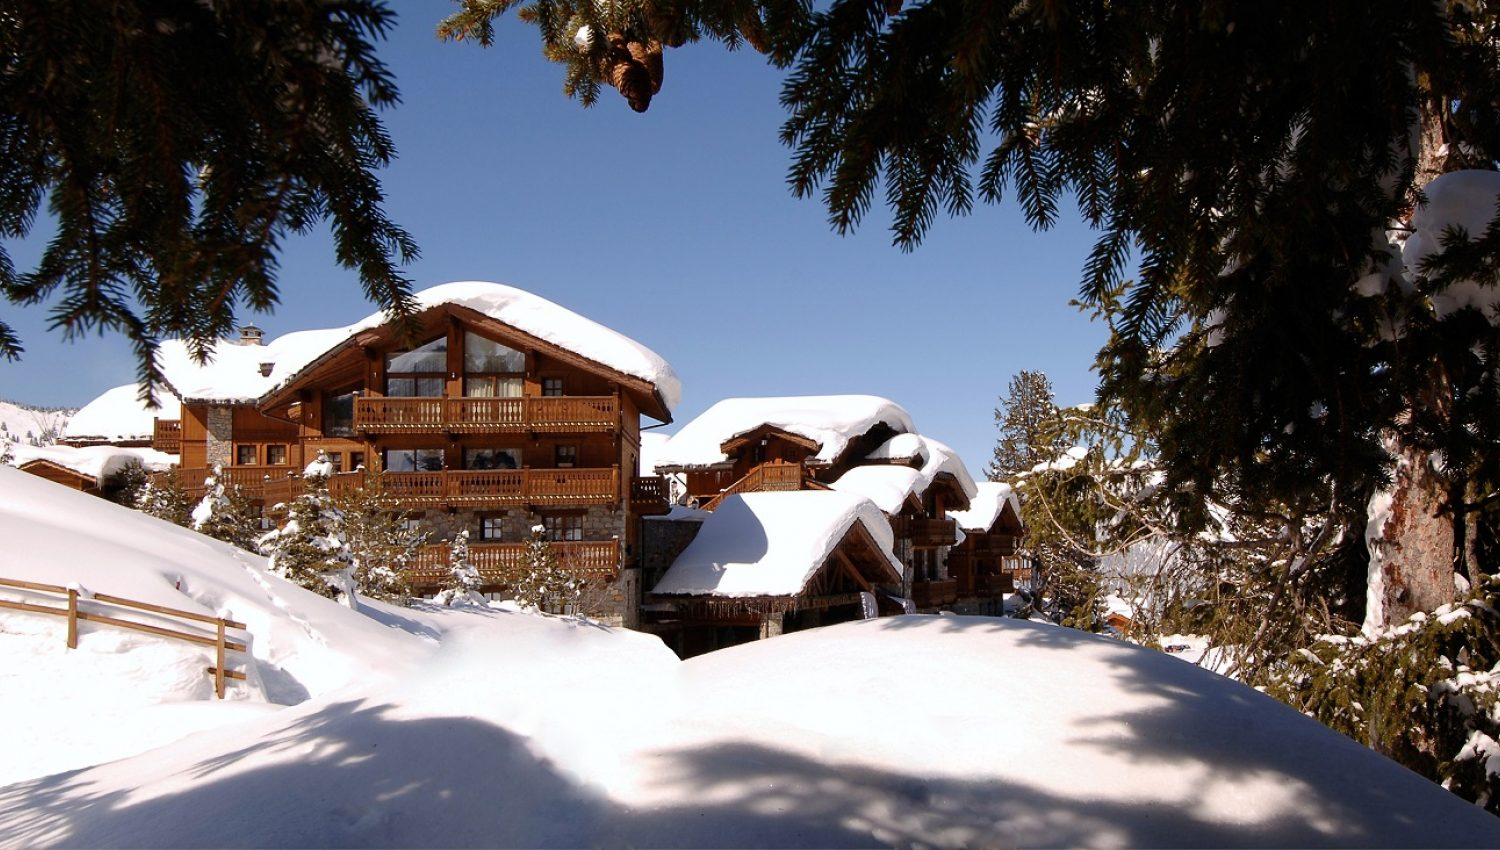 Courchevel-1850-Hotel-Kilimanjaro-1